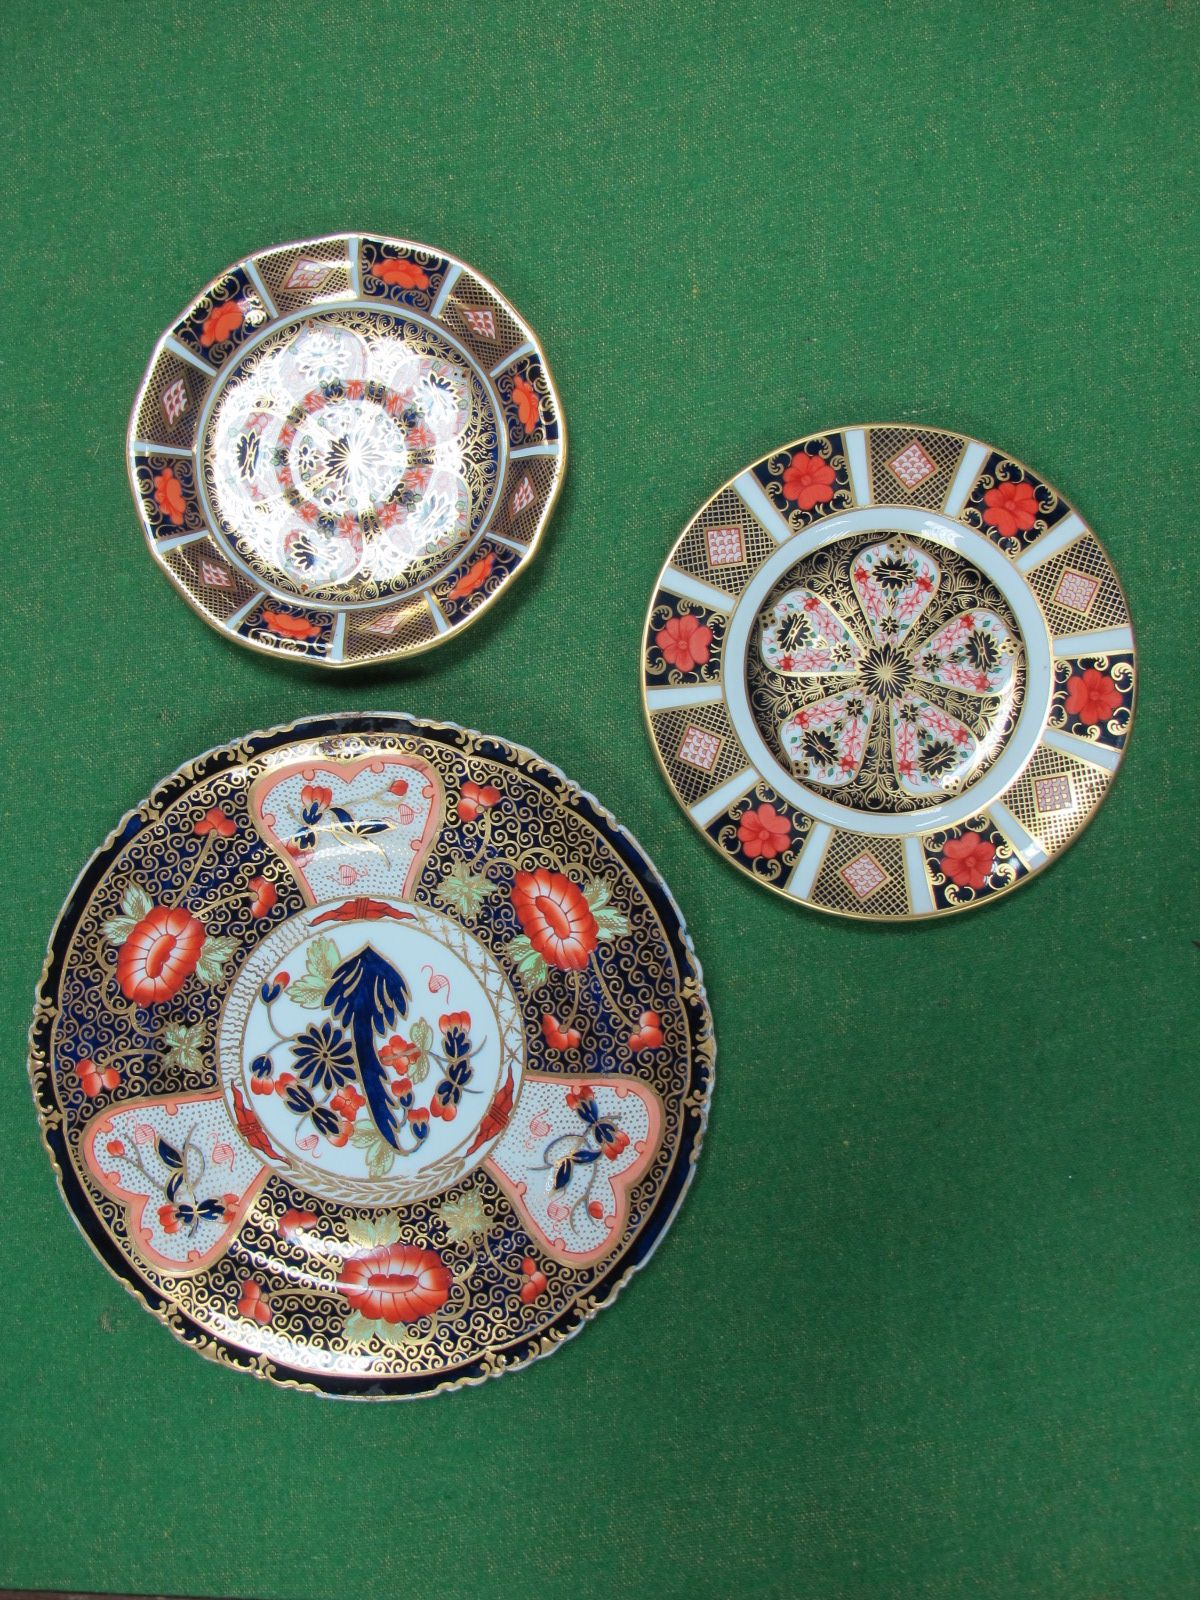 Lot 47 - A Royal Crown Derby 1128 Side Plate, 16cm diameter, (2nd quality), similar saucer and earlier